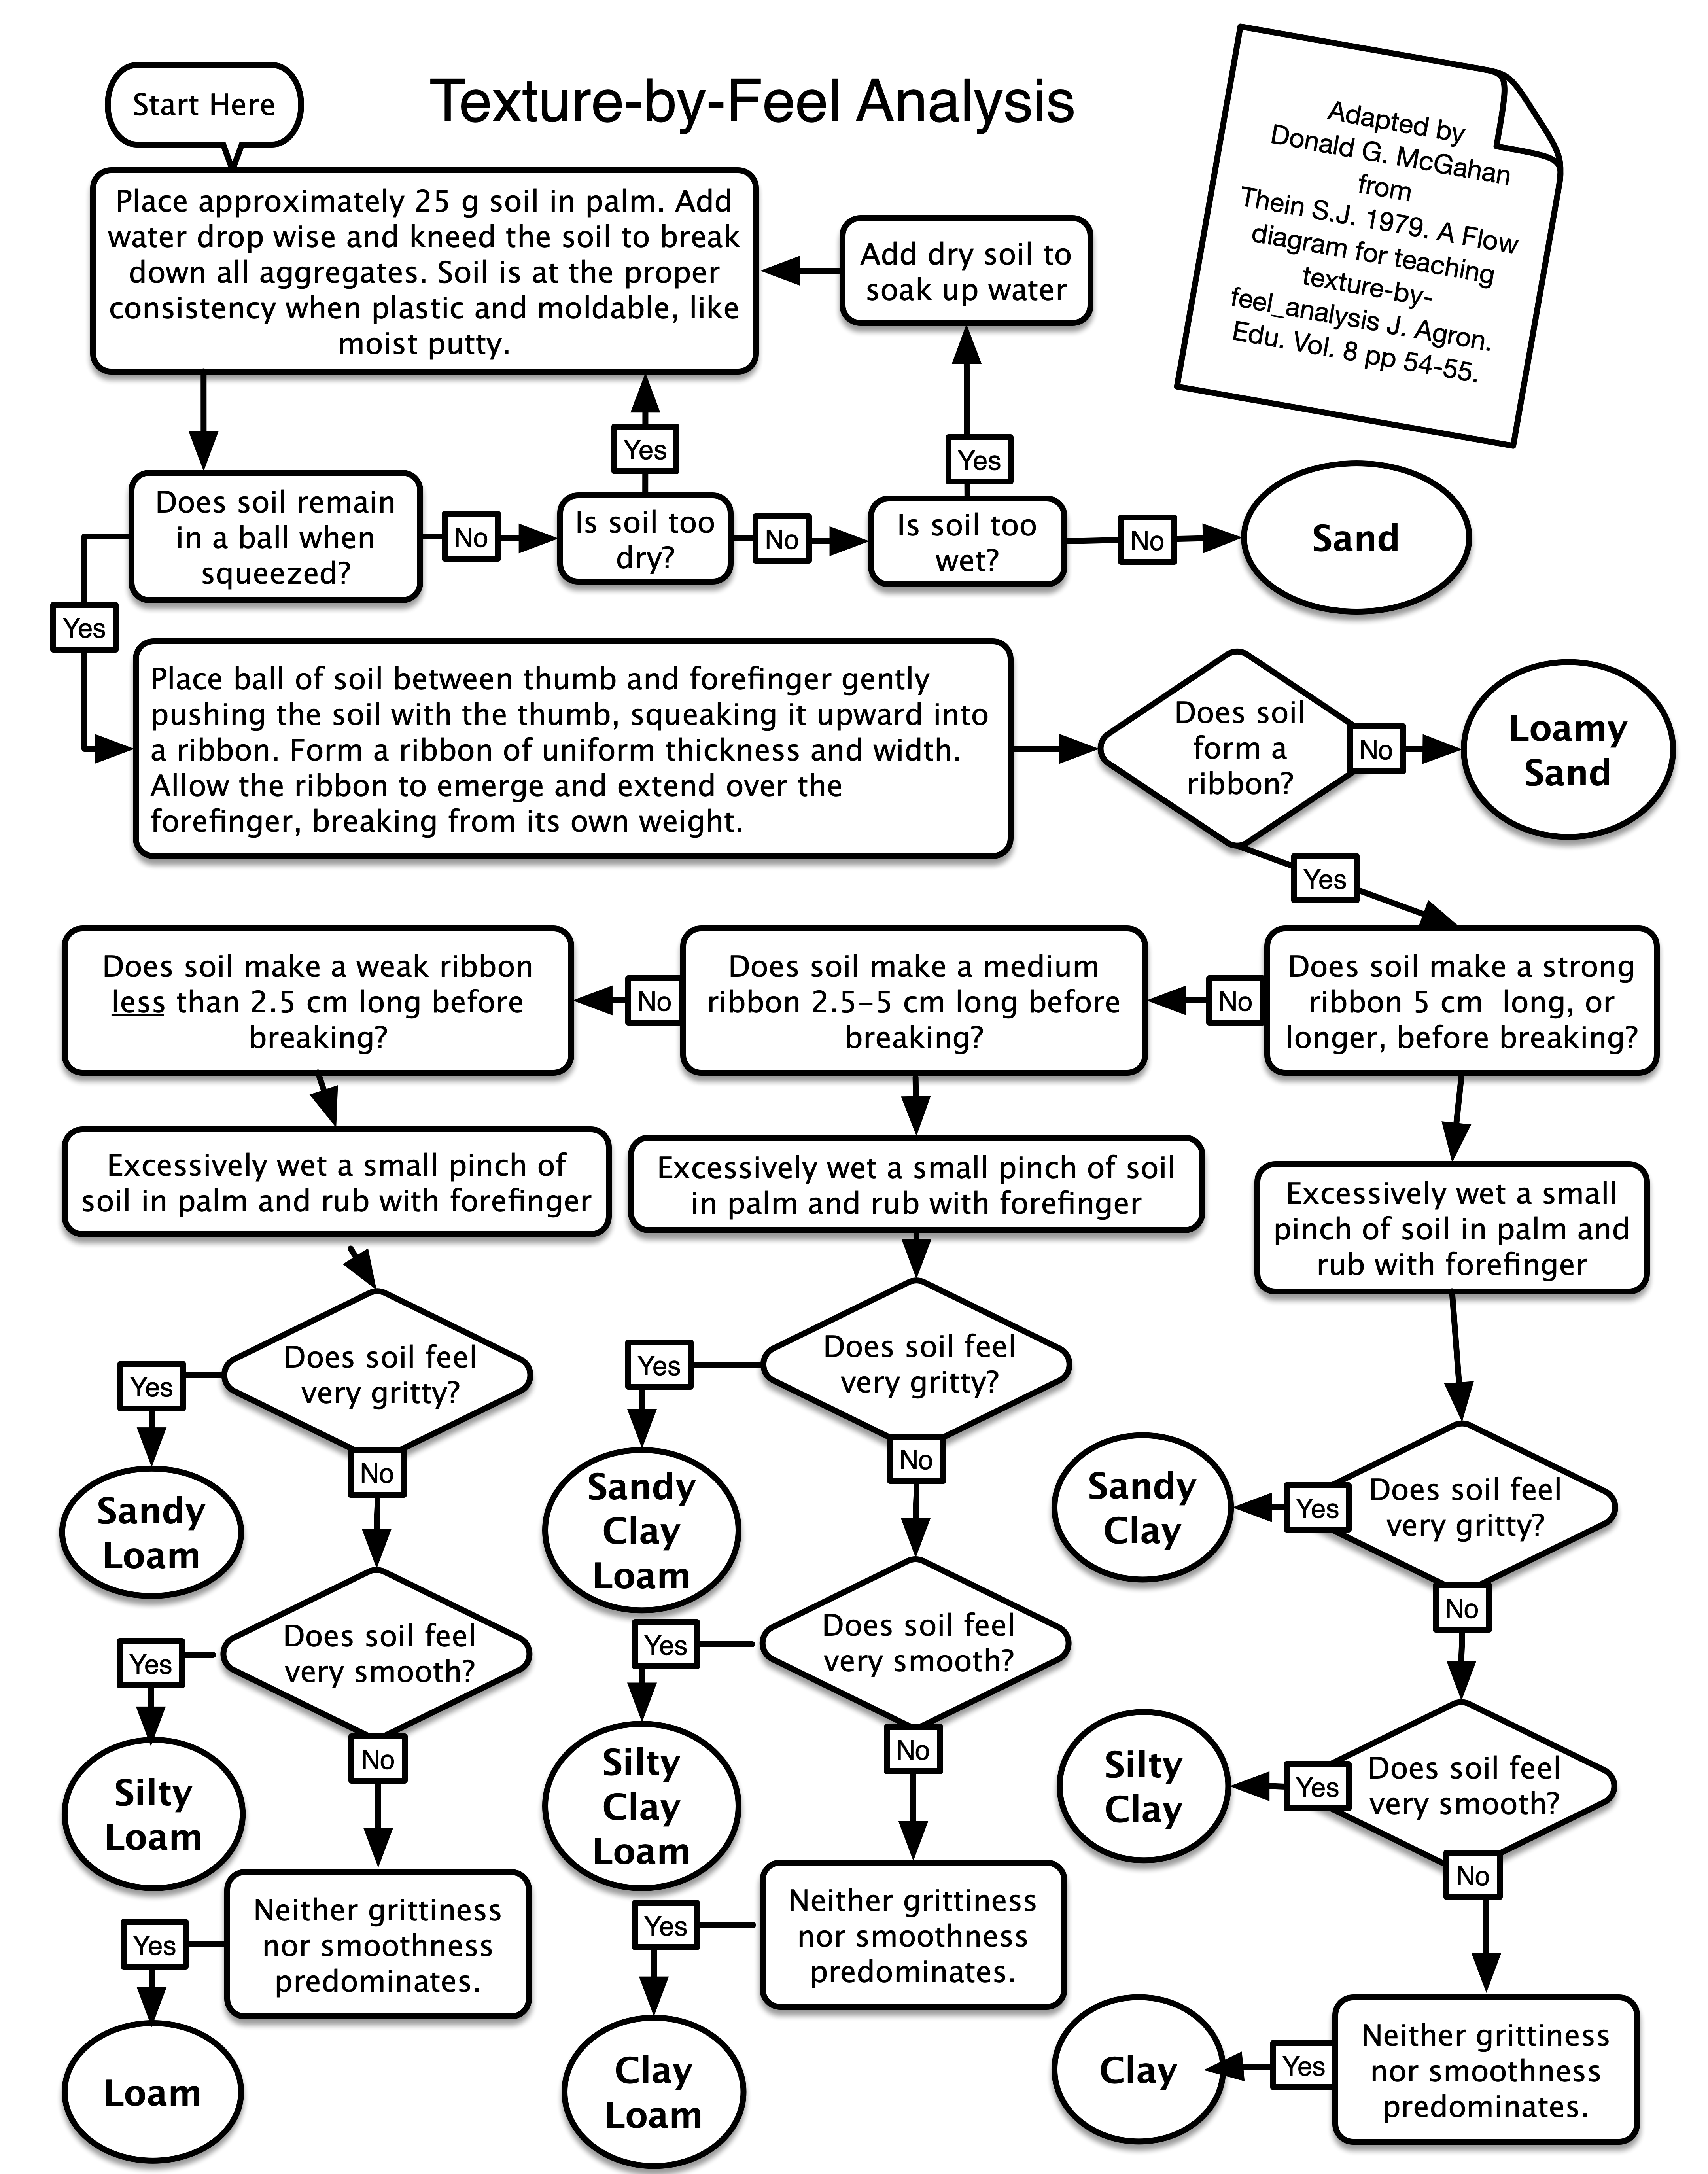 Texture-by-feel flow chart